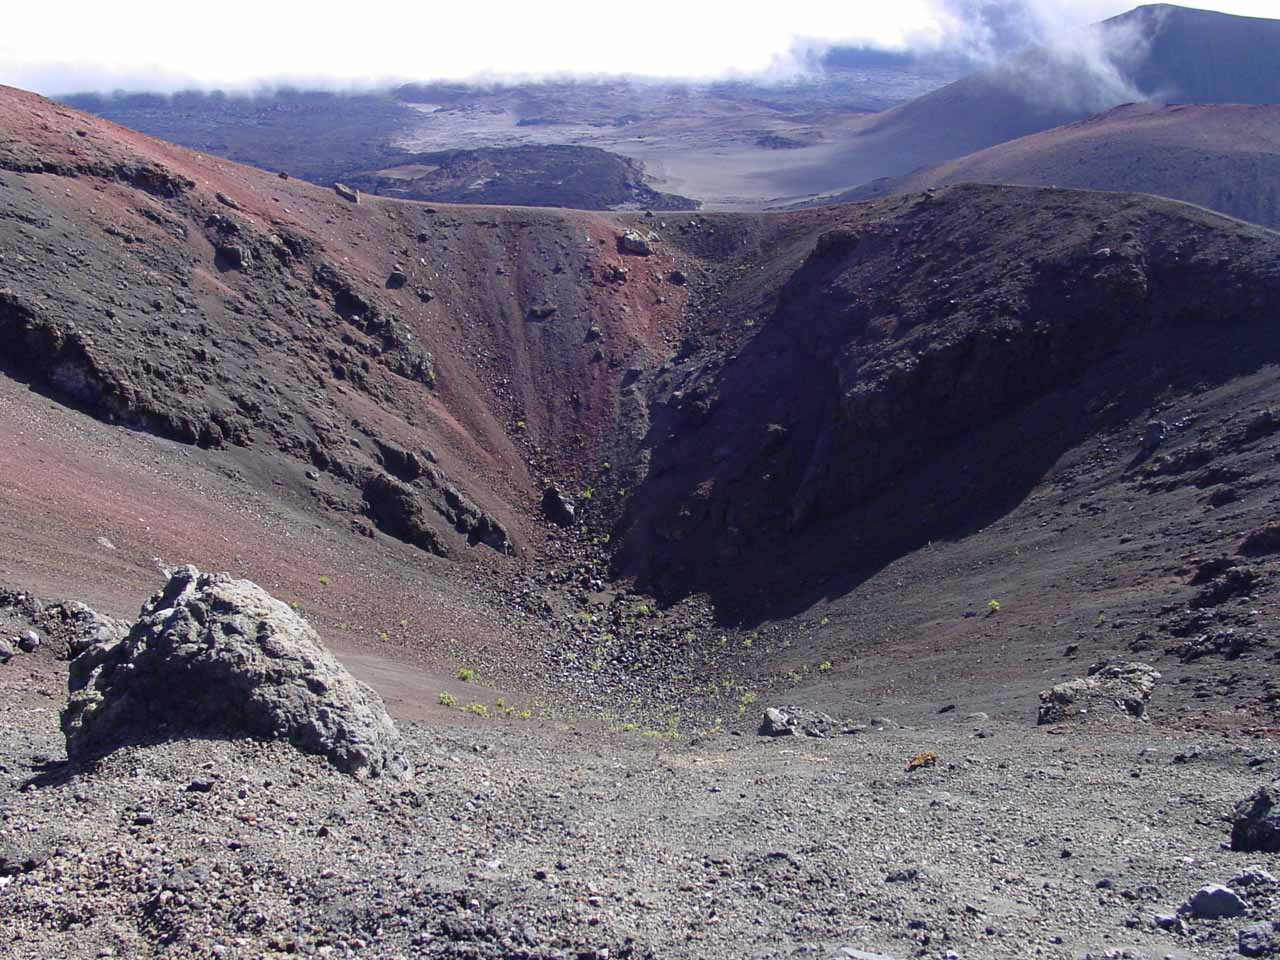 Amazing to think that further up the lush and rainy slopes of windward Haleakala was the dry and barren crater area of the volcano itself